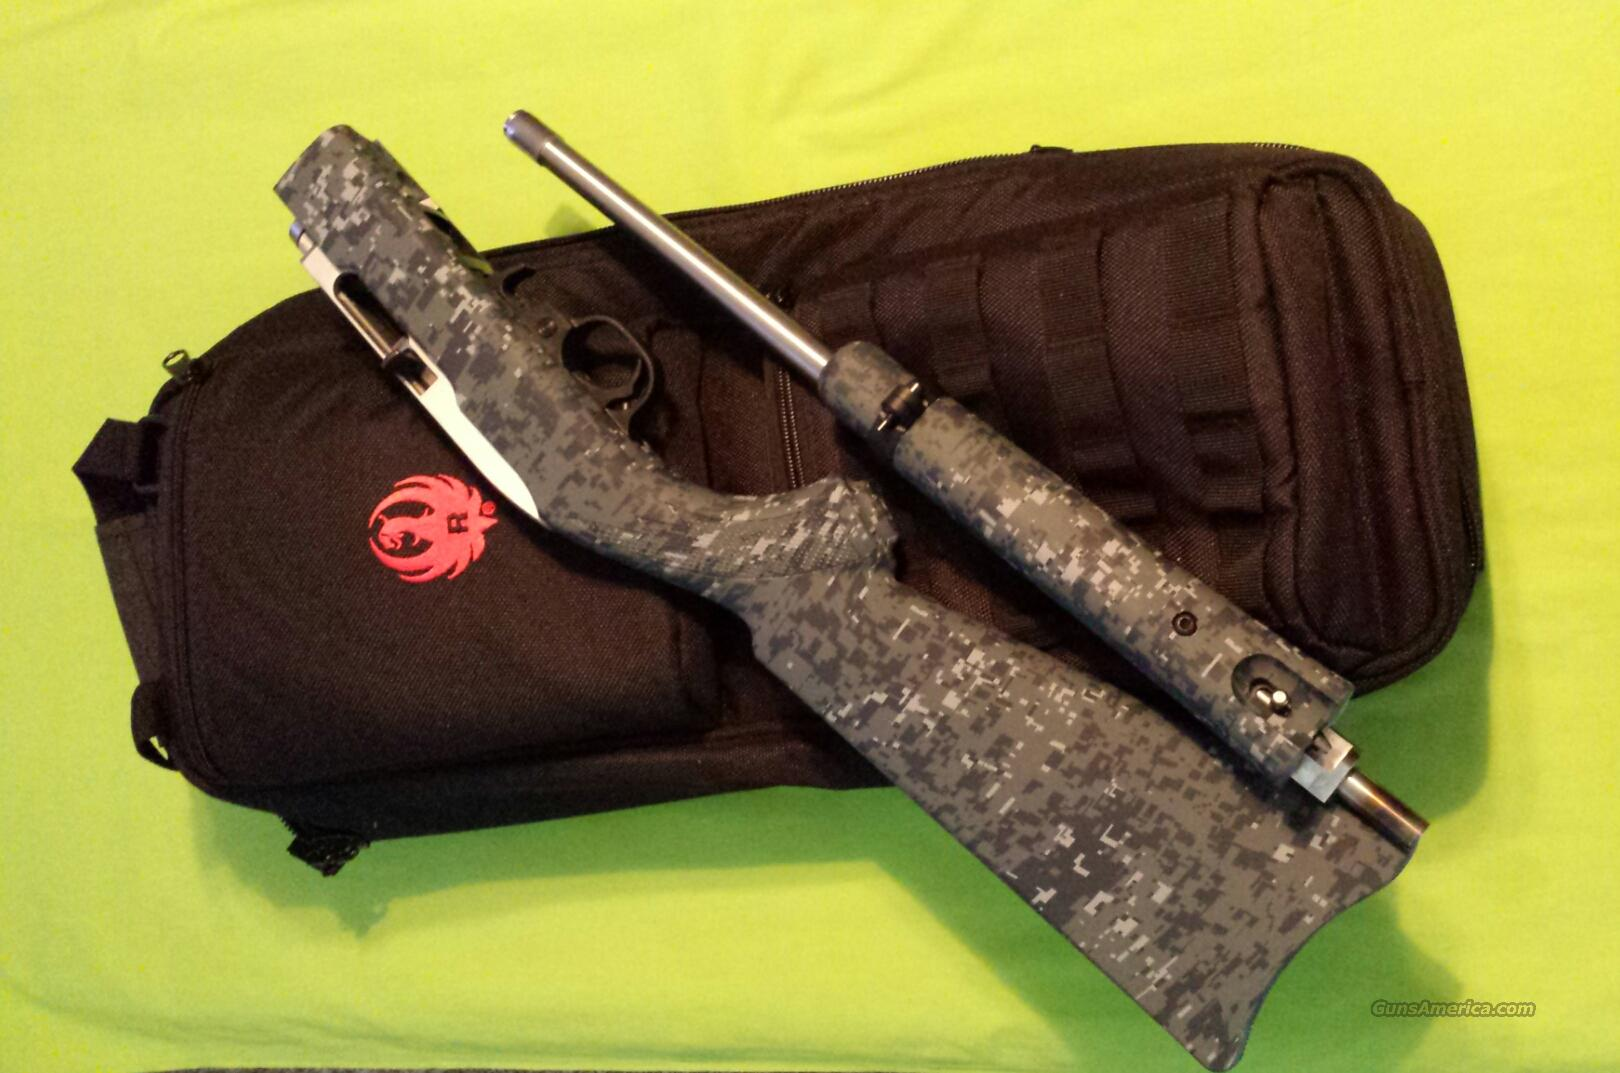 RUGER 10/22 TAKEDOWN 22LR NAVY DIGITAL CAMO 11188  Guns > Rifles > Ruger Rifles > 10-22